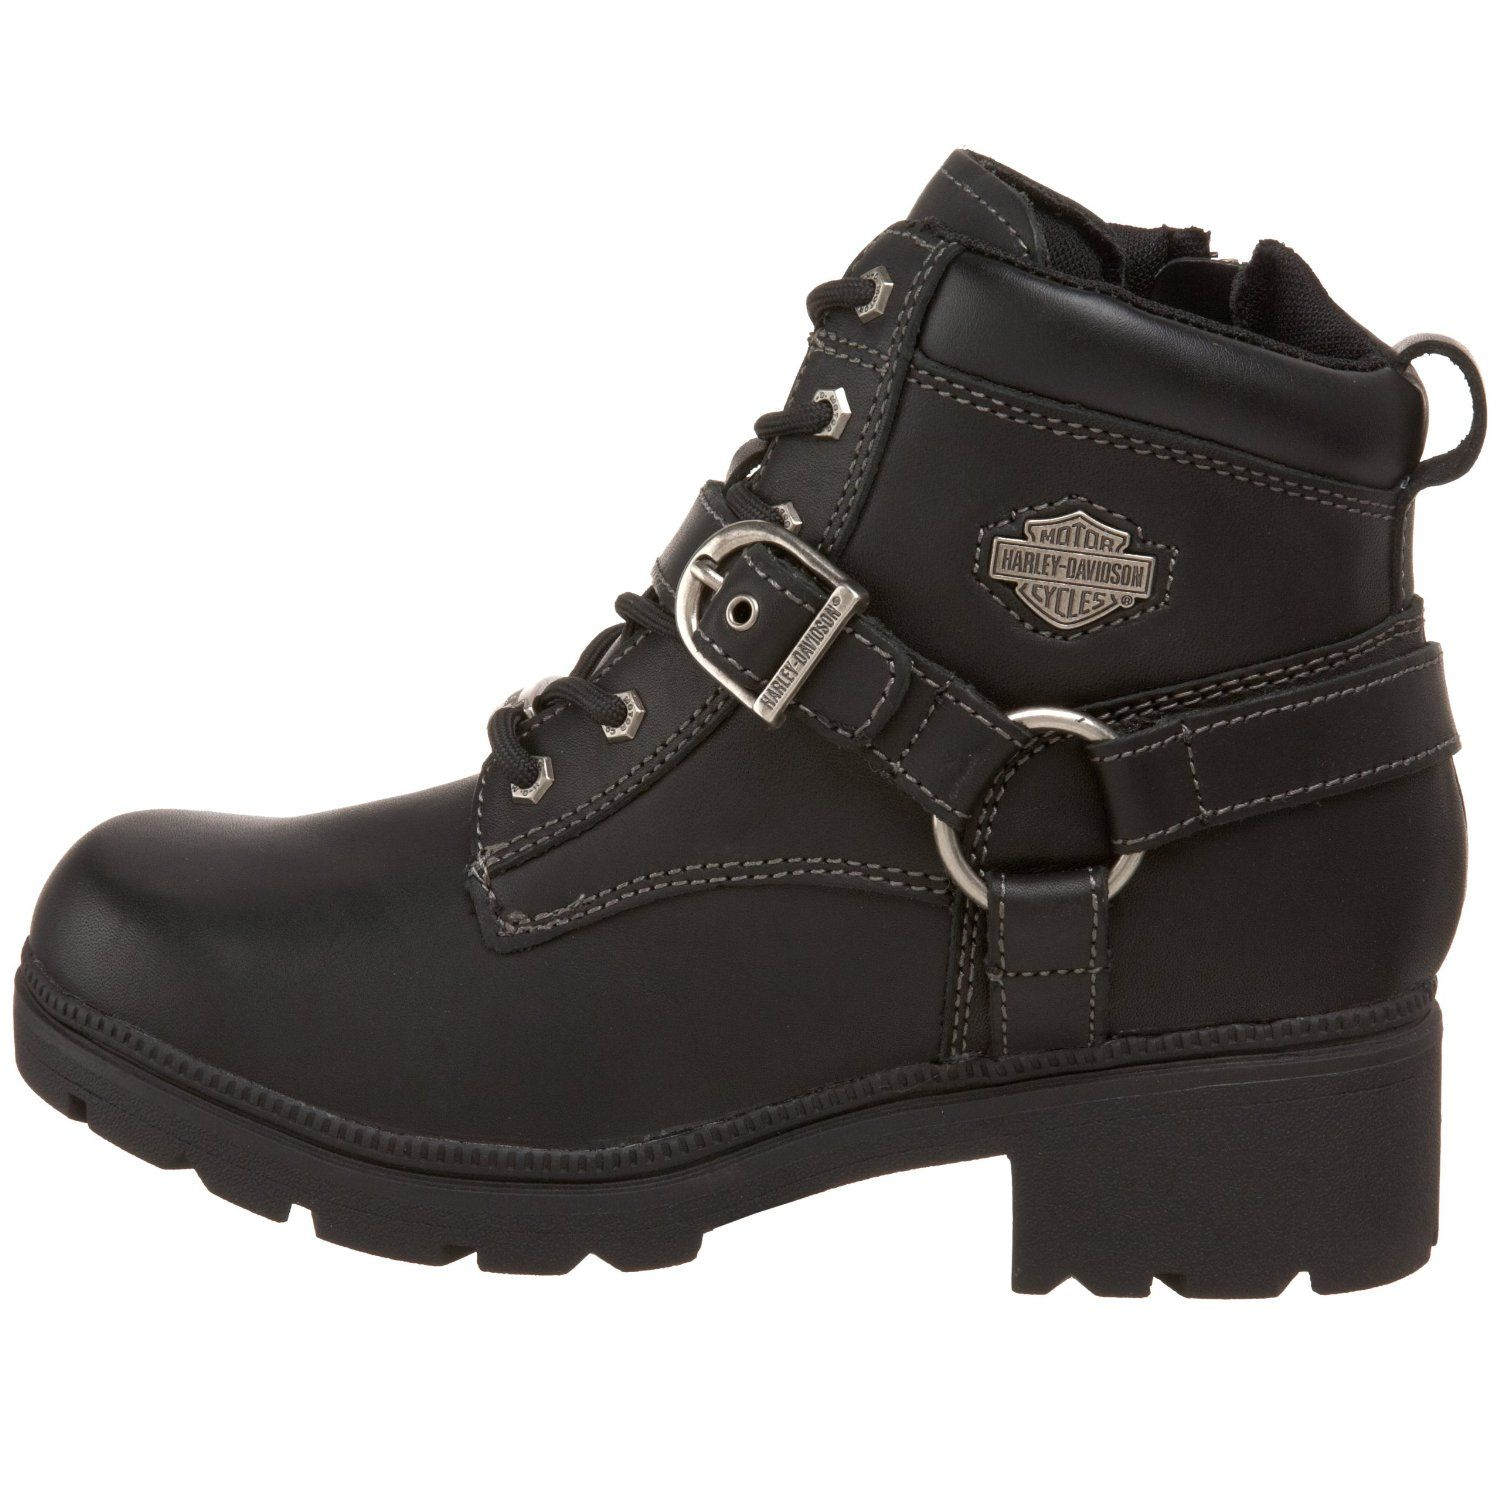 Women's Harley Davidson Boots: Step into a Legend! | Harley